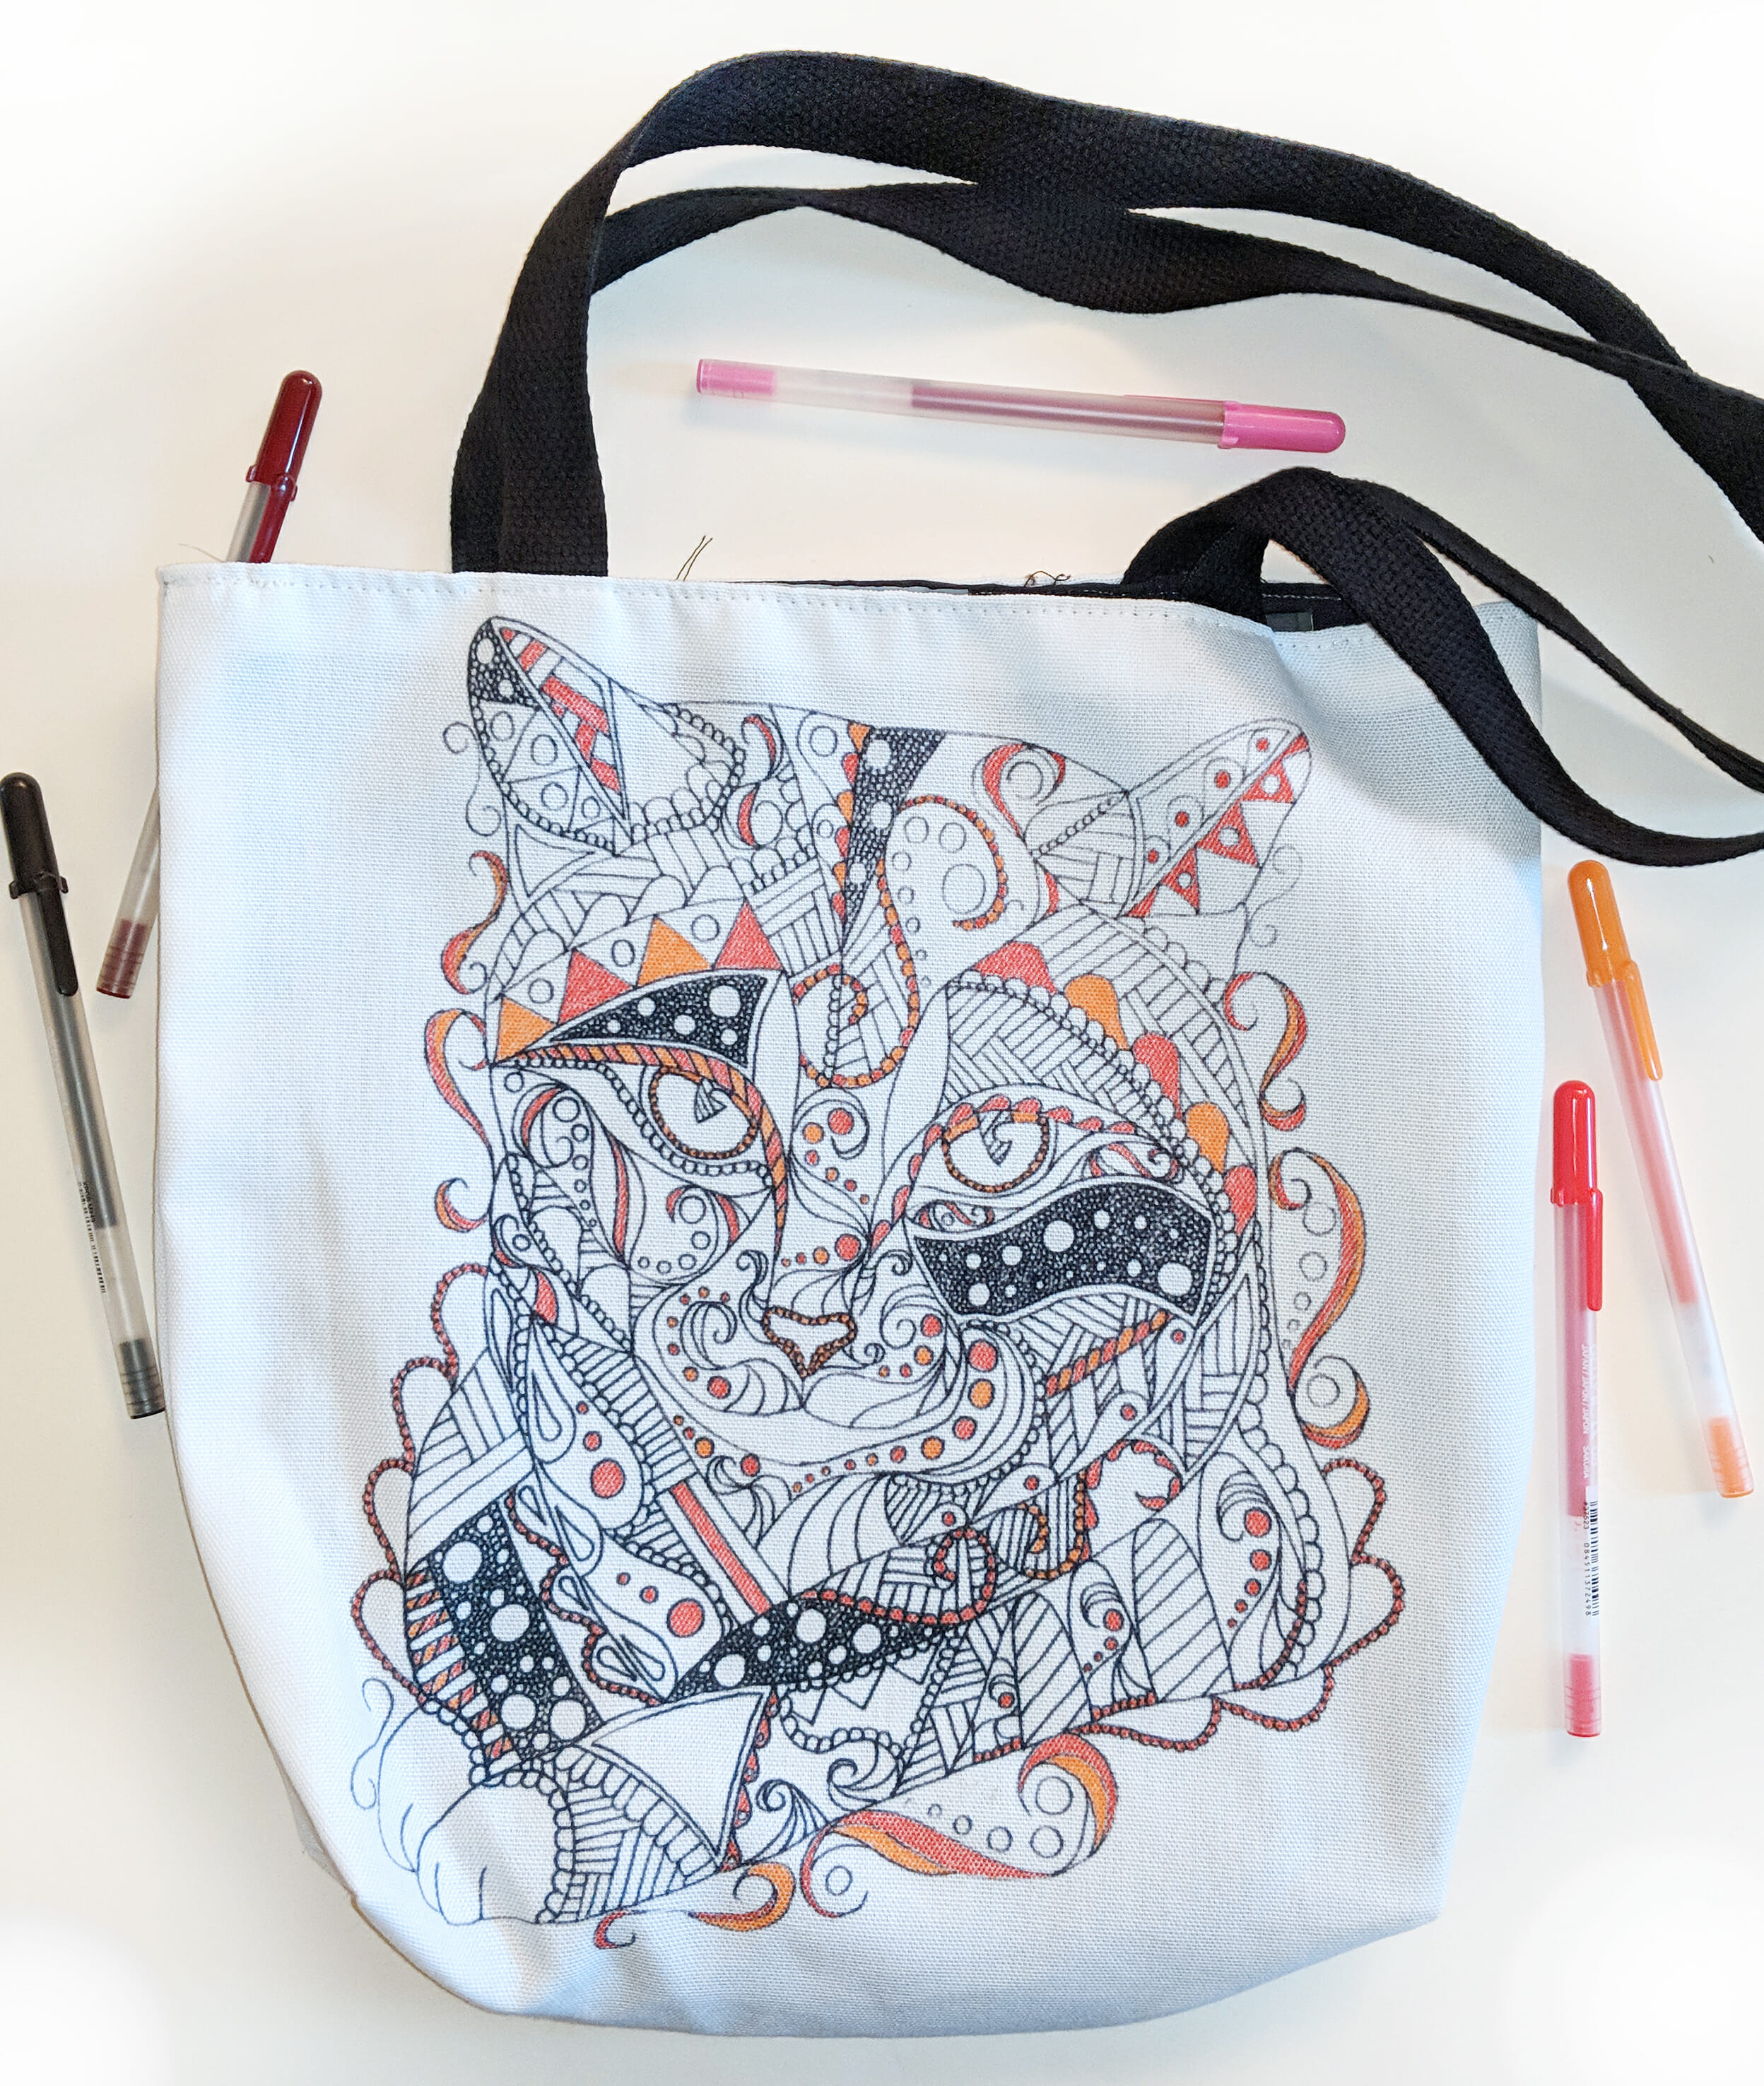 Coloring Tote Bag: Coloring On The Go!